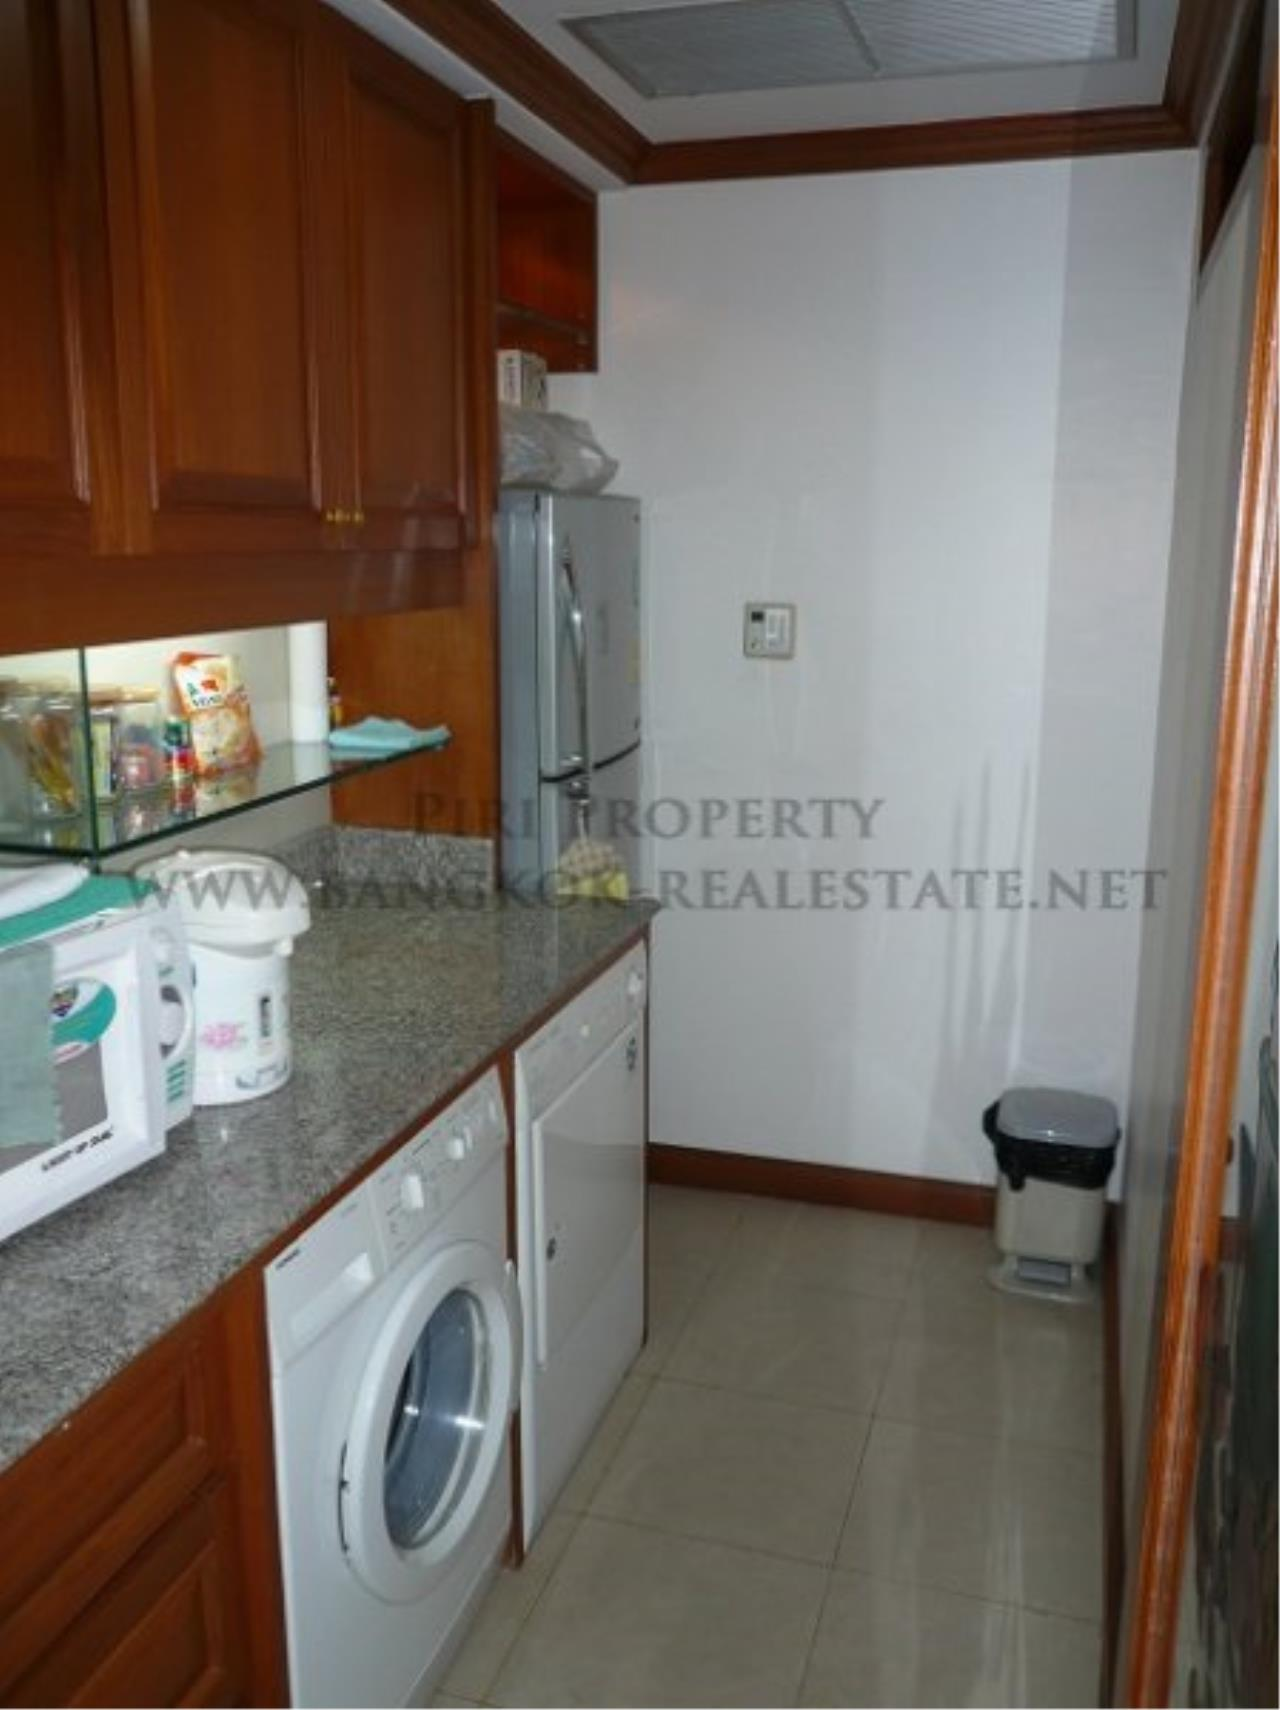 Piri Property Agency's Duplex Condominium in Asoke for Sale - 3 Bedroom 4